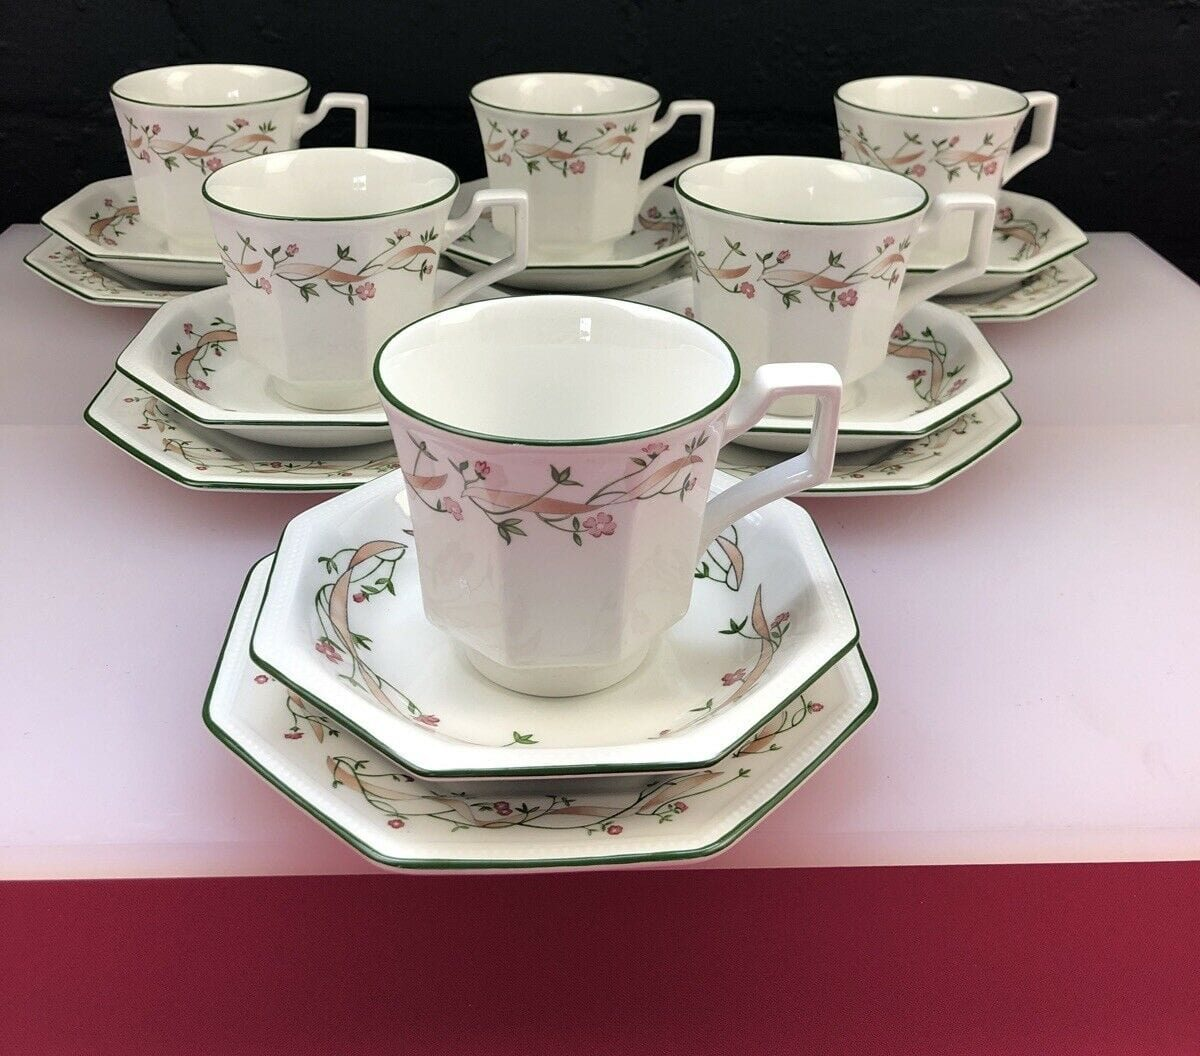 6 x Johnson Brothers Eternal Beau Tea Trios Cups Saucers and Side Plates Set 224047421640 e1628239057748 13 Things Most Households Had When We Were Growing Up - How Many Did You Have?